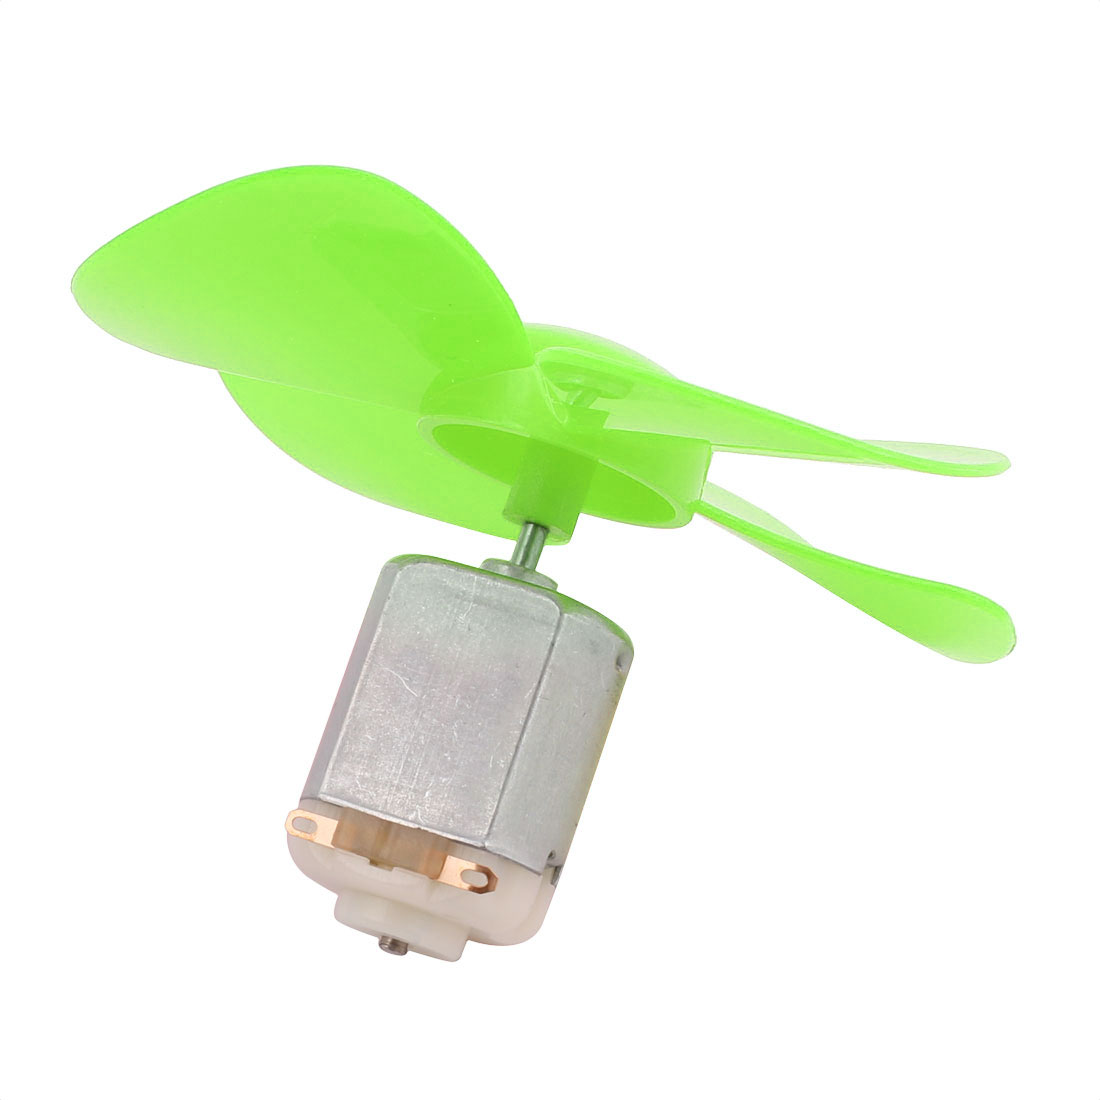 5Pcs DC 6V 0.21A 13000RPM Strong Force Motor 4 Vanes Green Propeller 80mmx2mm - image 3 of 5